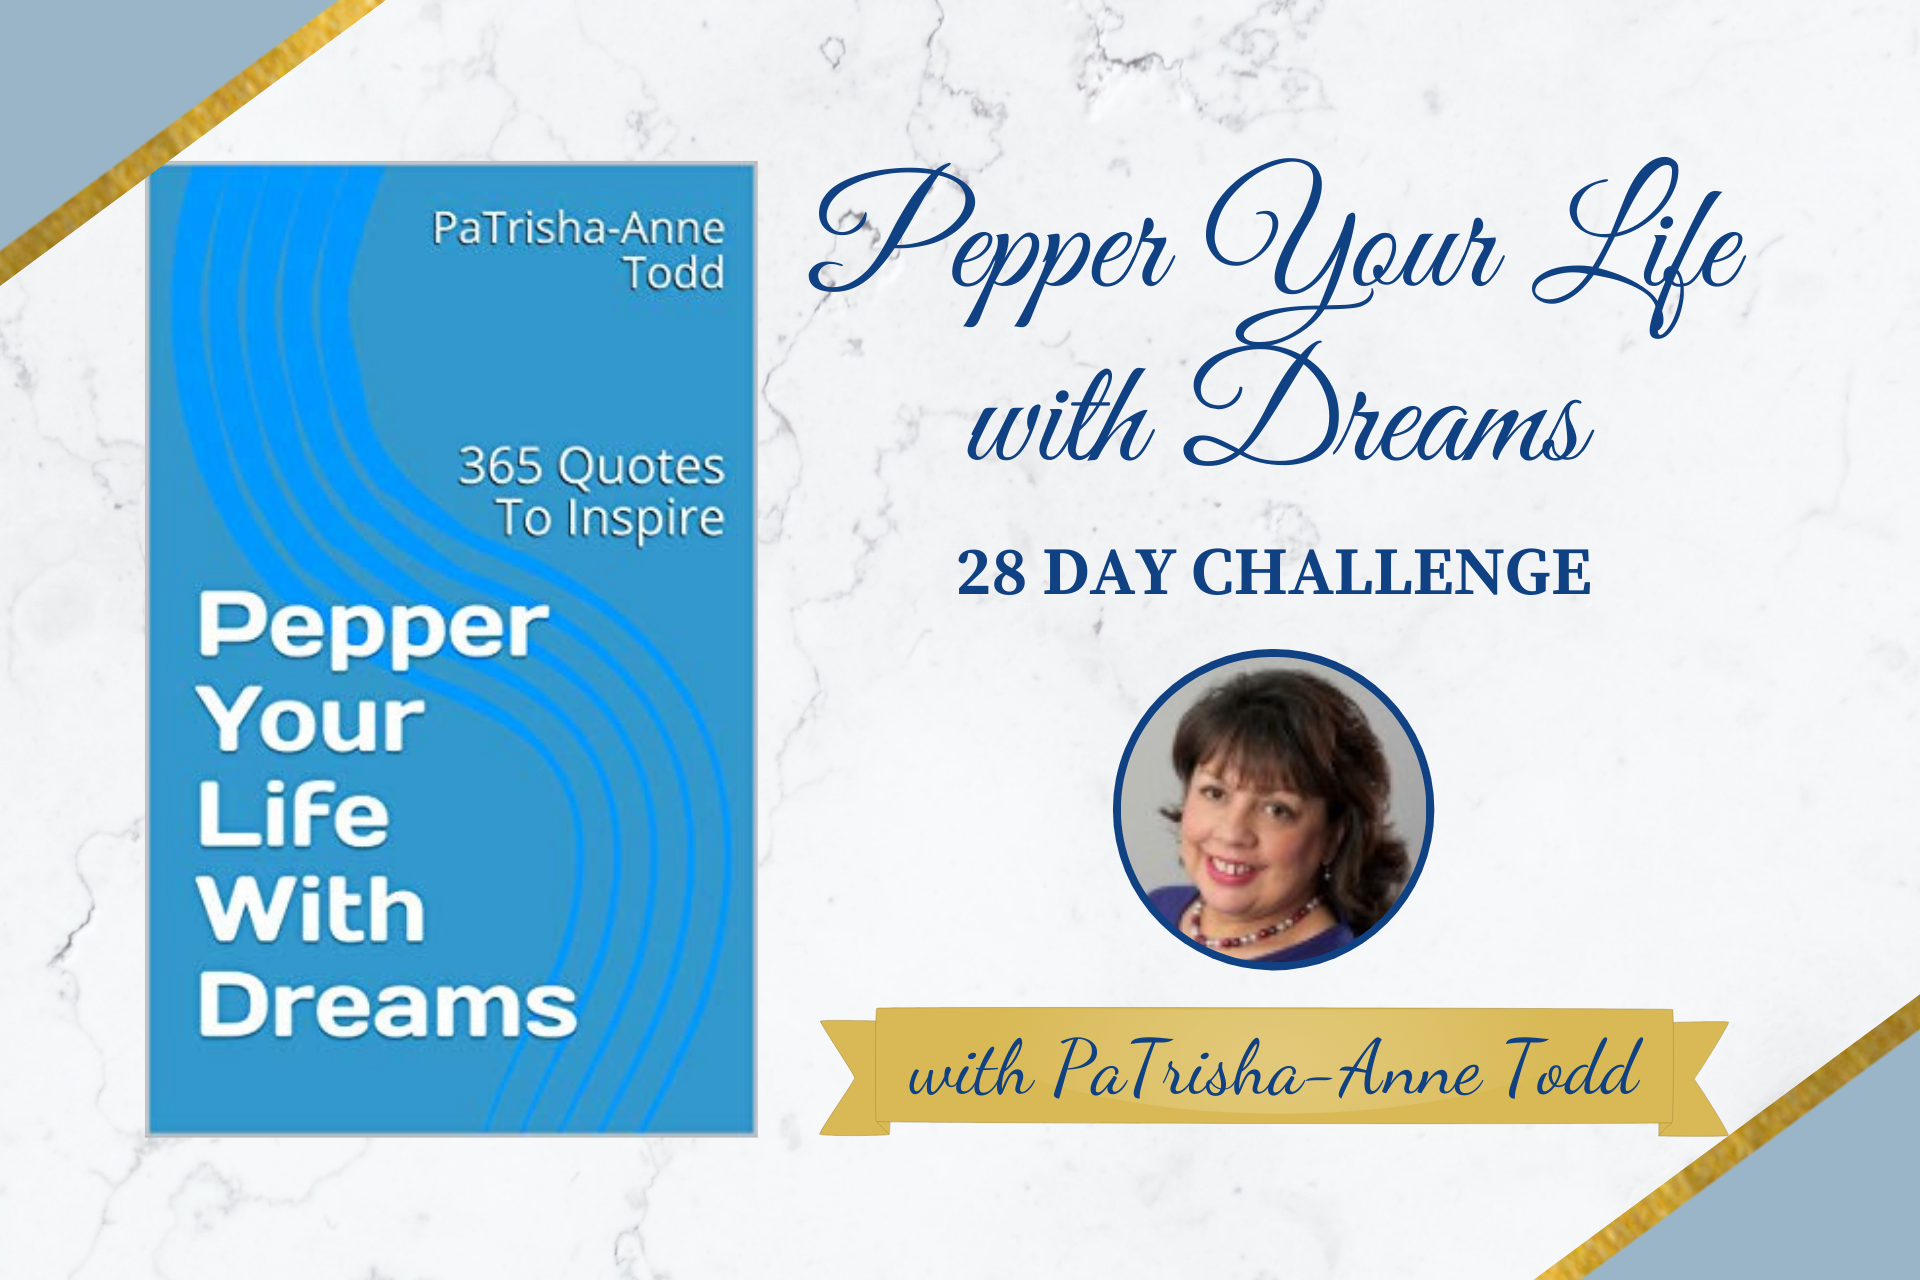 Pepper YOur Life with Dreams 101 - Design Your Life in 28 Days from Master Coach and Trainer PaTrisha-Anne Todd at www.CoachingLeadsToSuccess.com